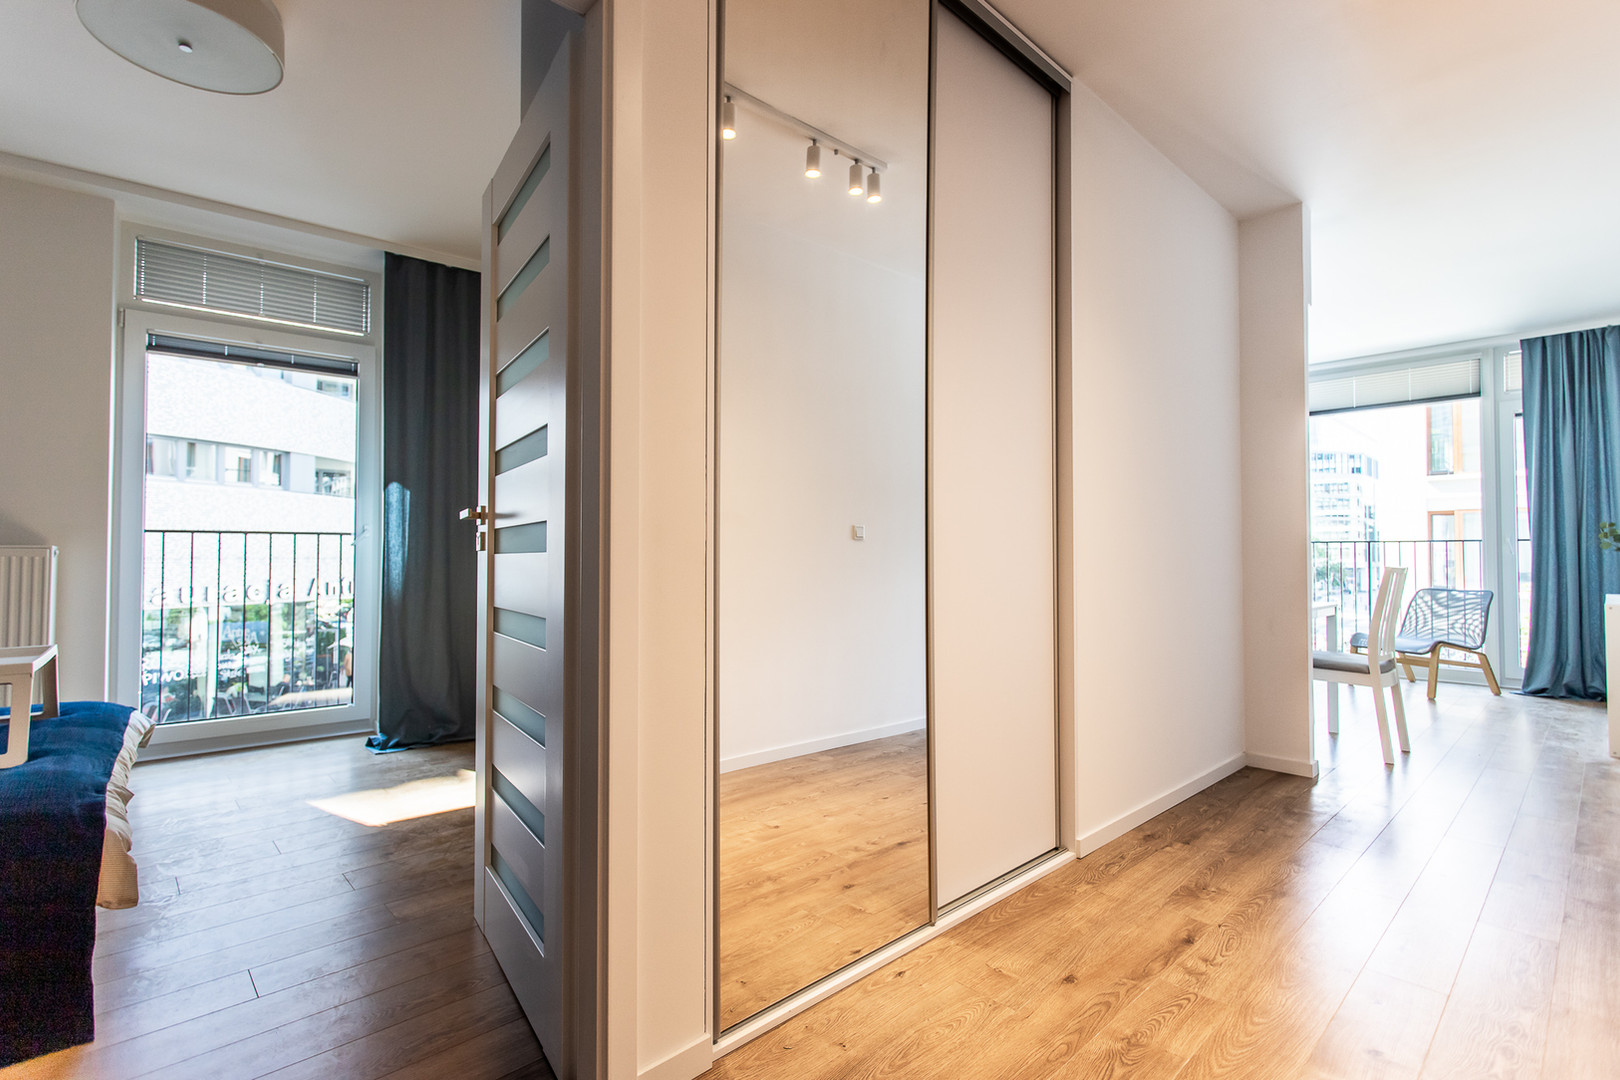 Wrasaw Wola Office Apartments_9.jpg